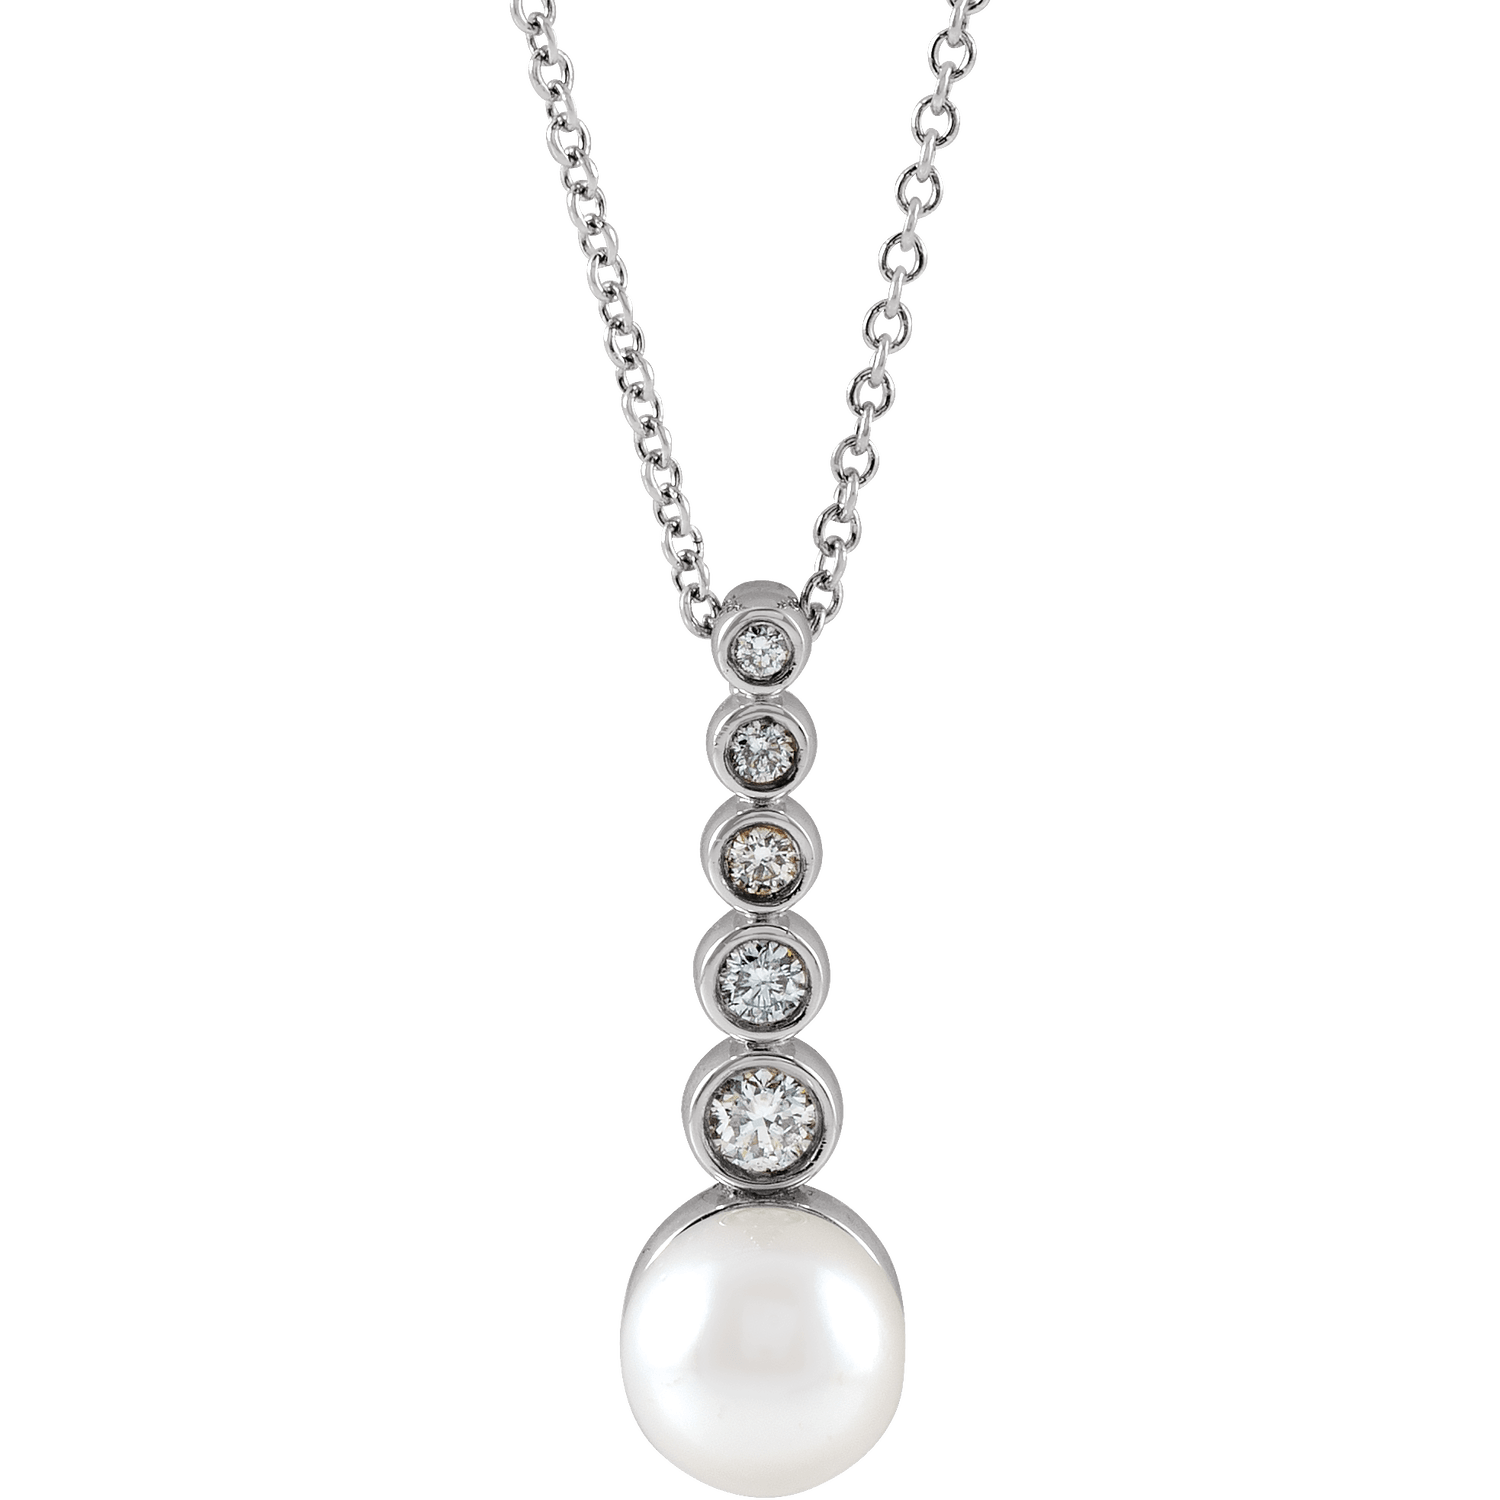 pearl bar necklace or pendant